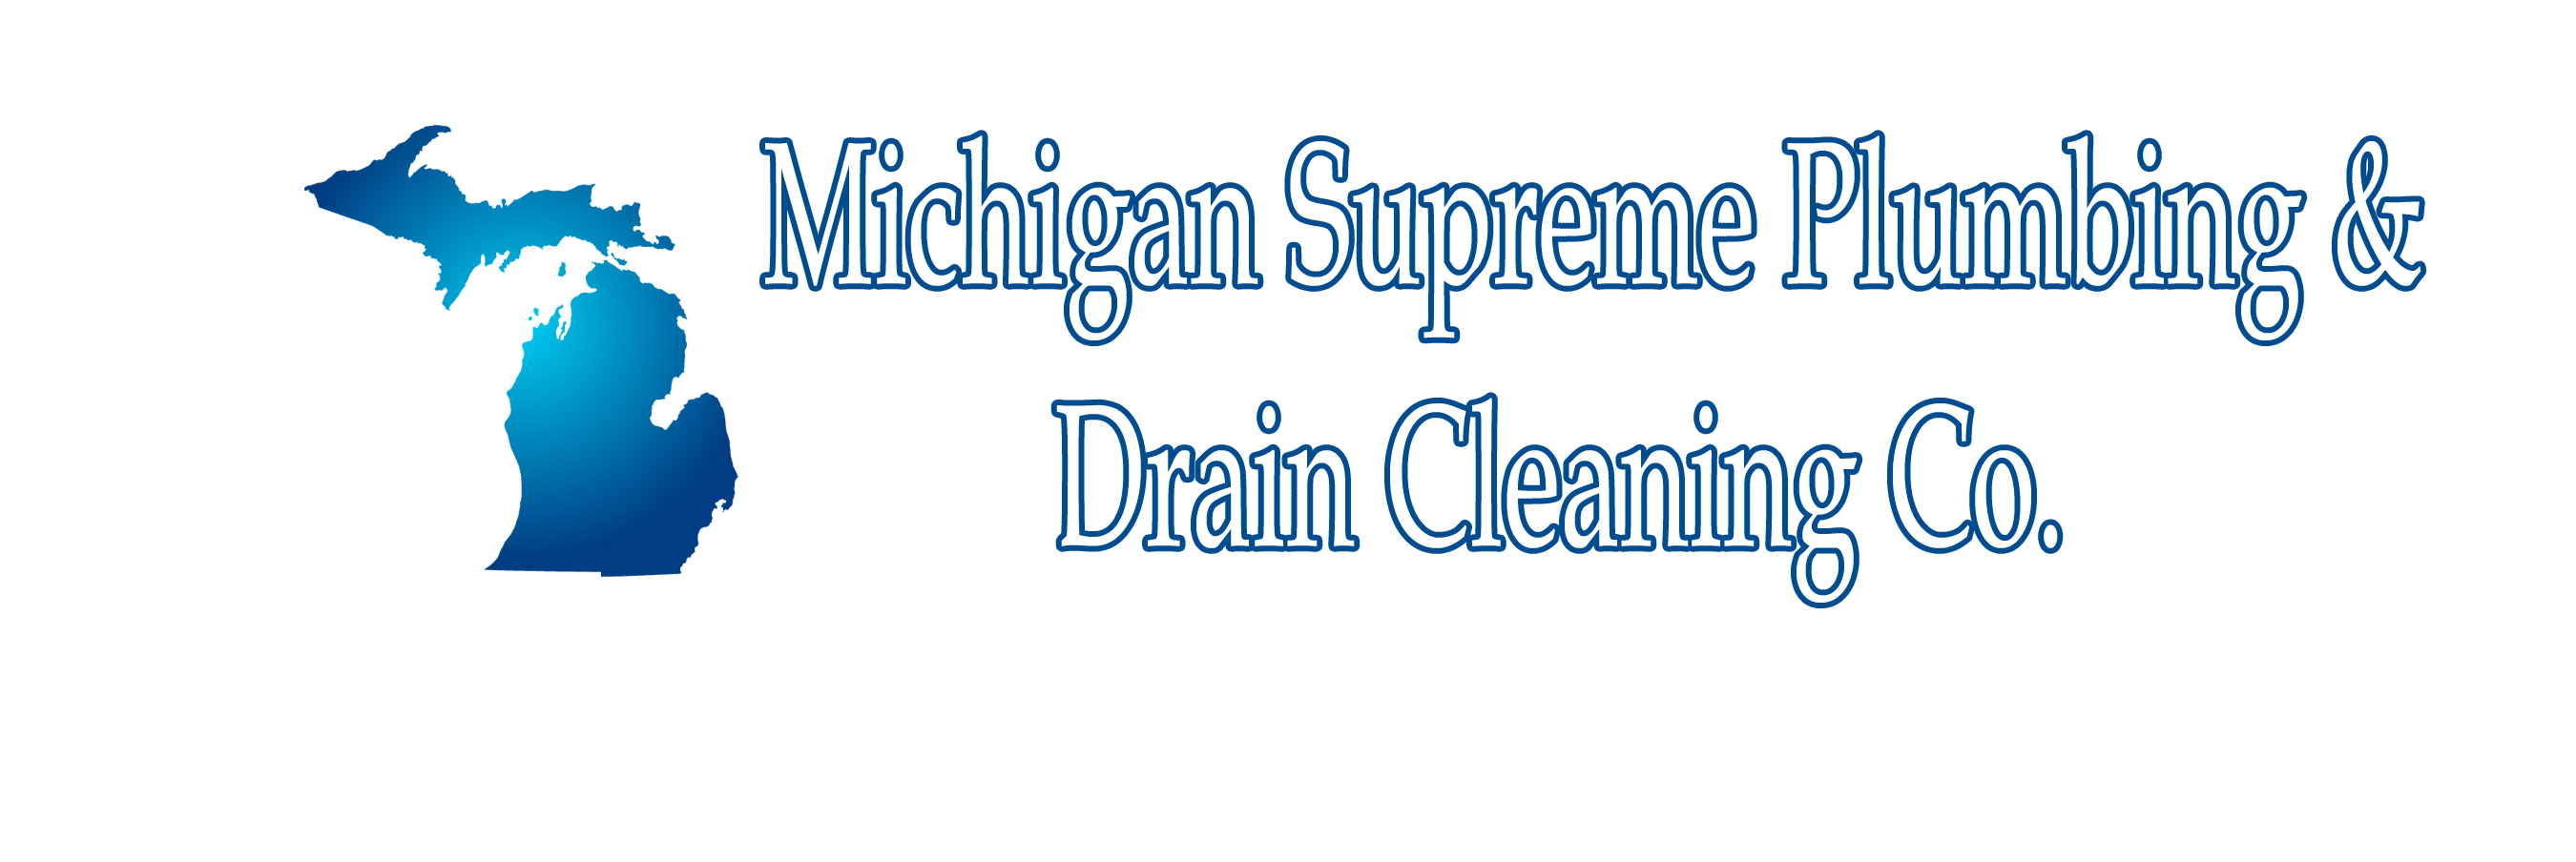 Michigan Supreme Plumbing